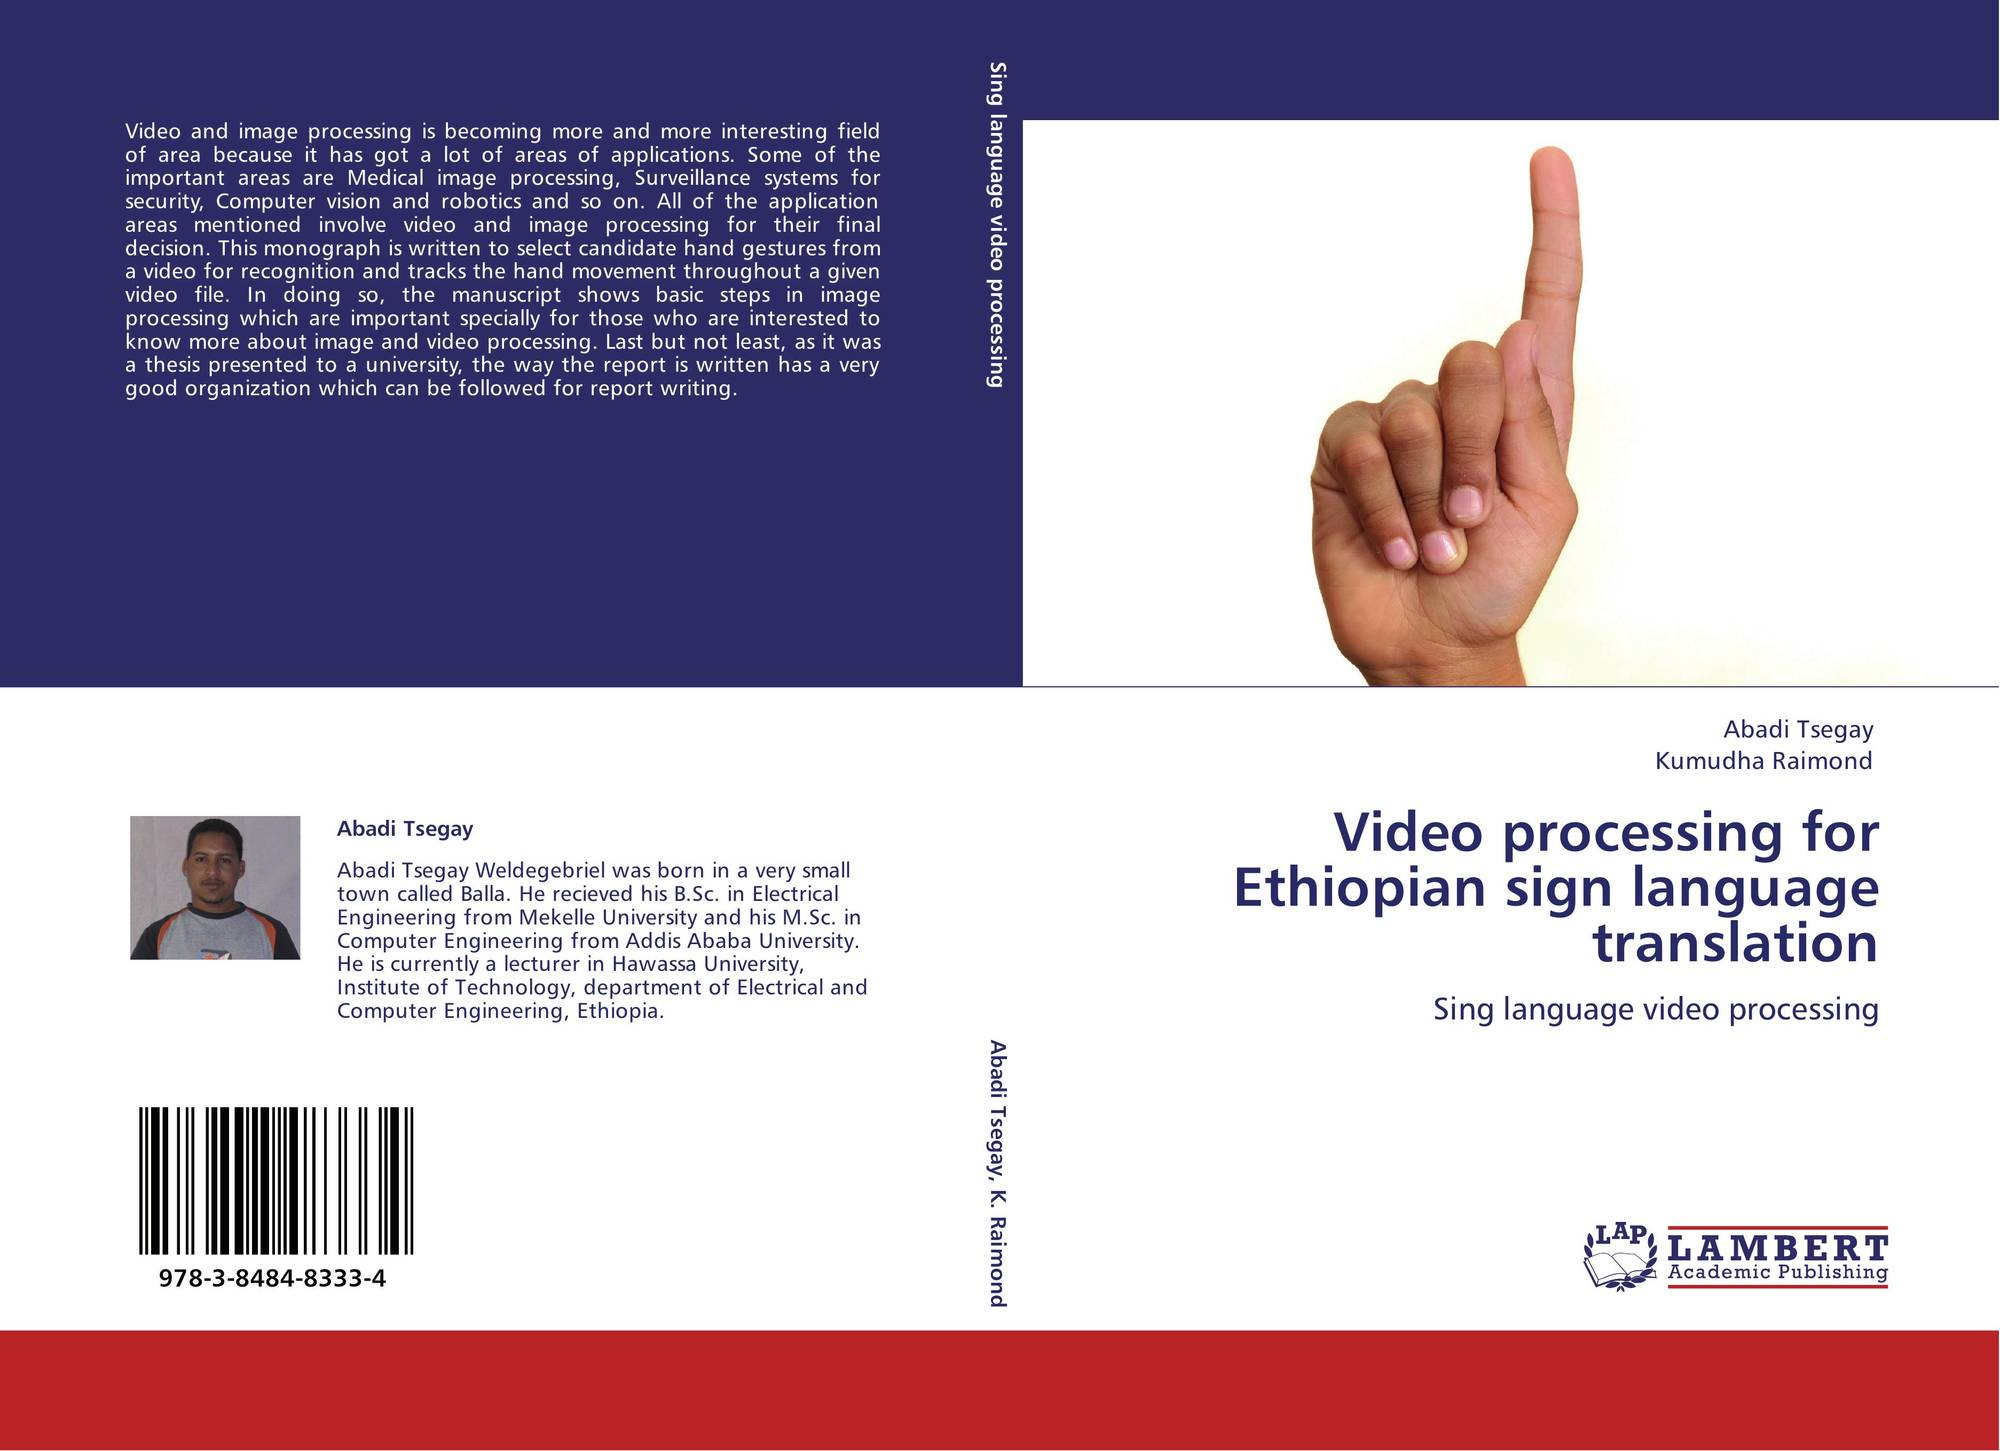 Video processing for Ethiopian sign language translation